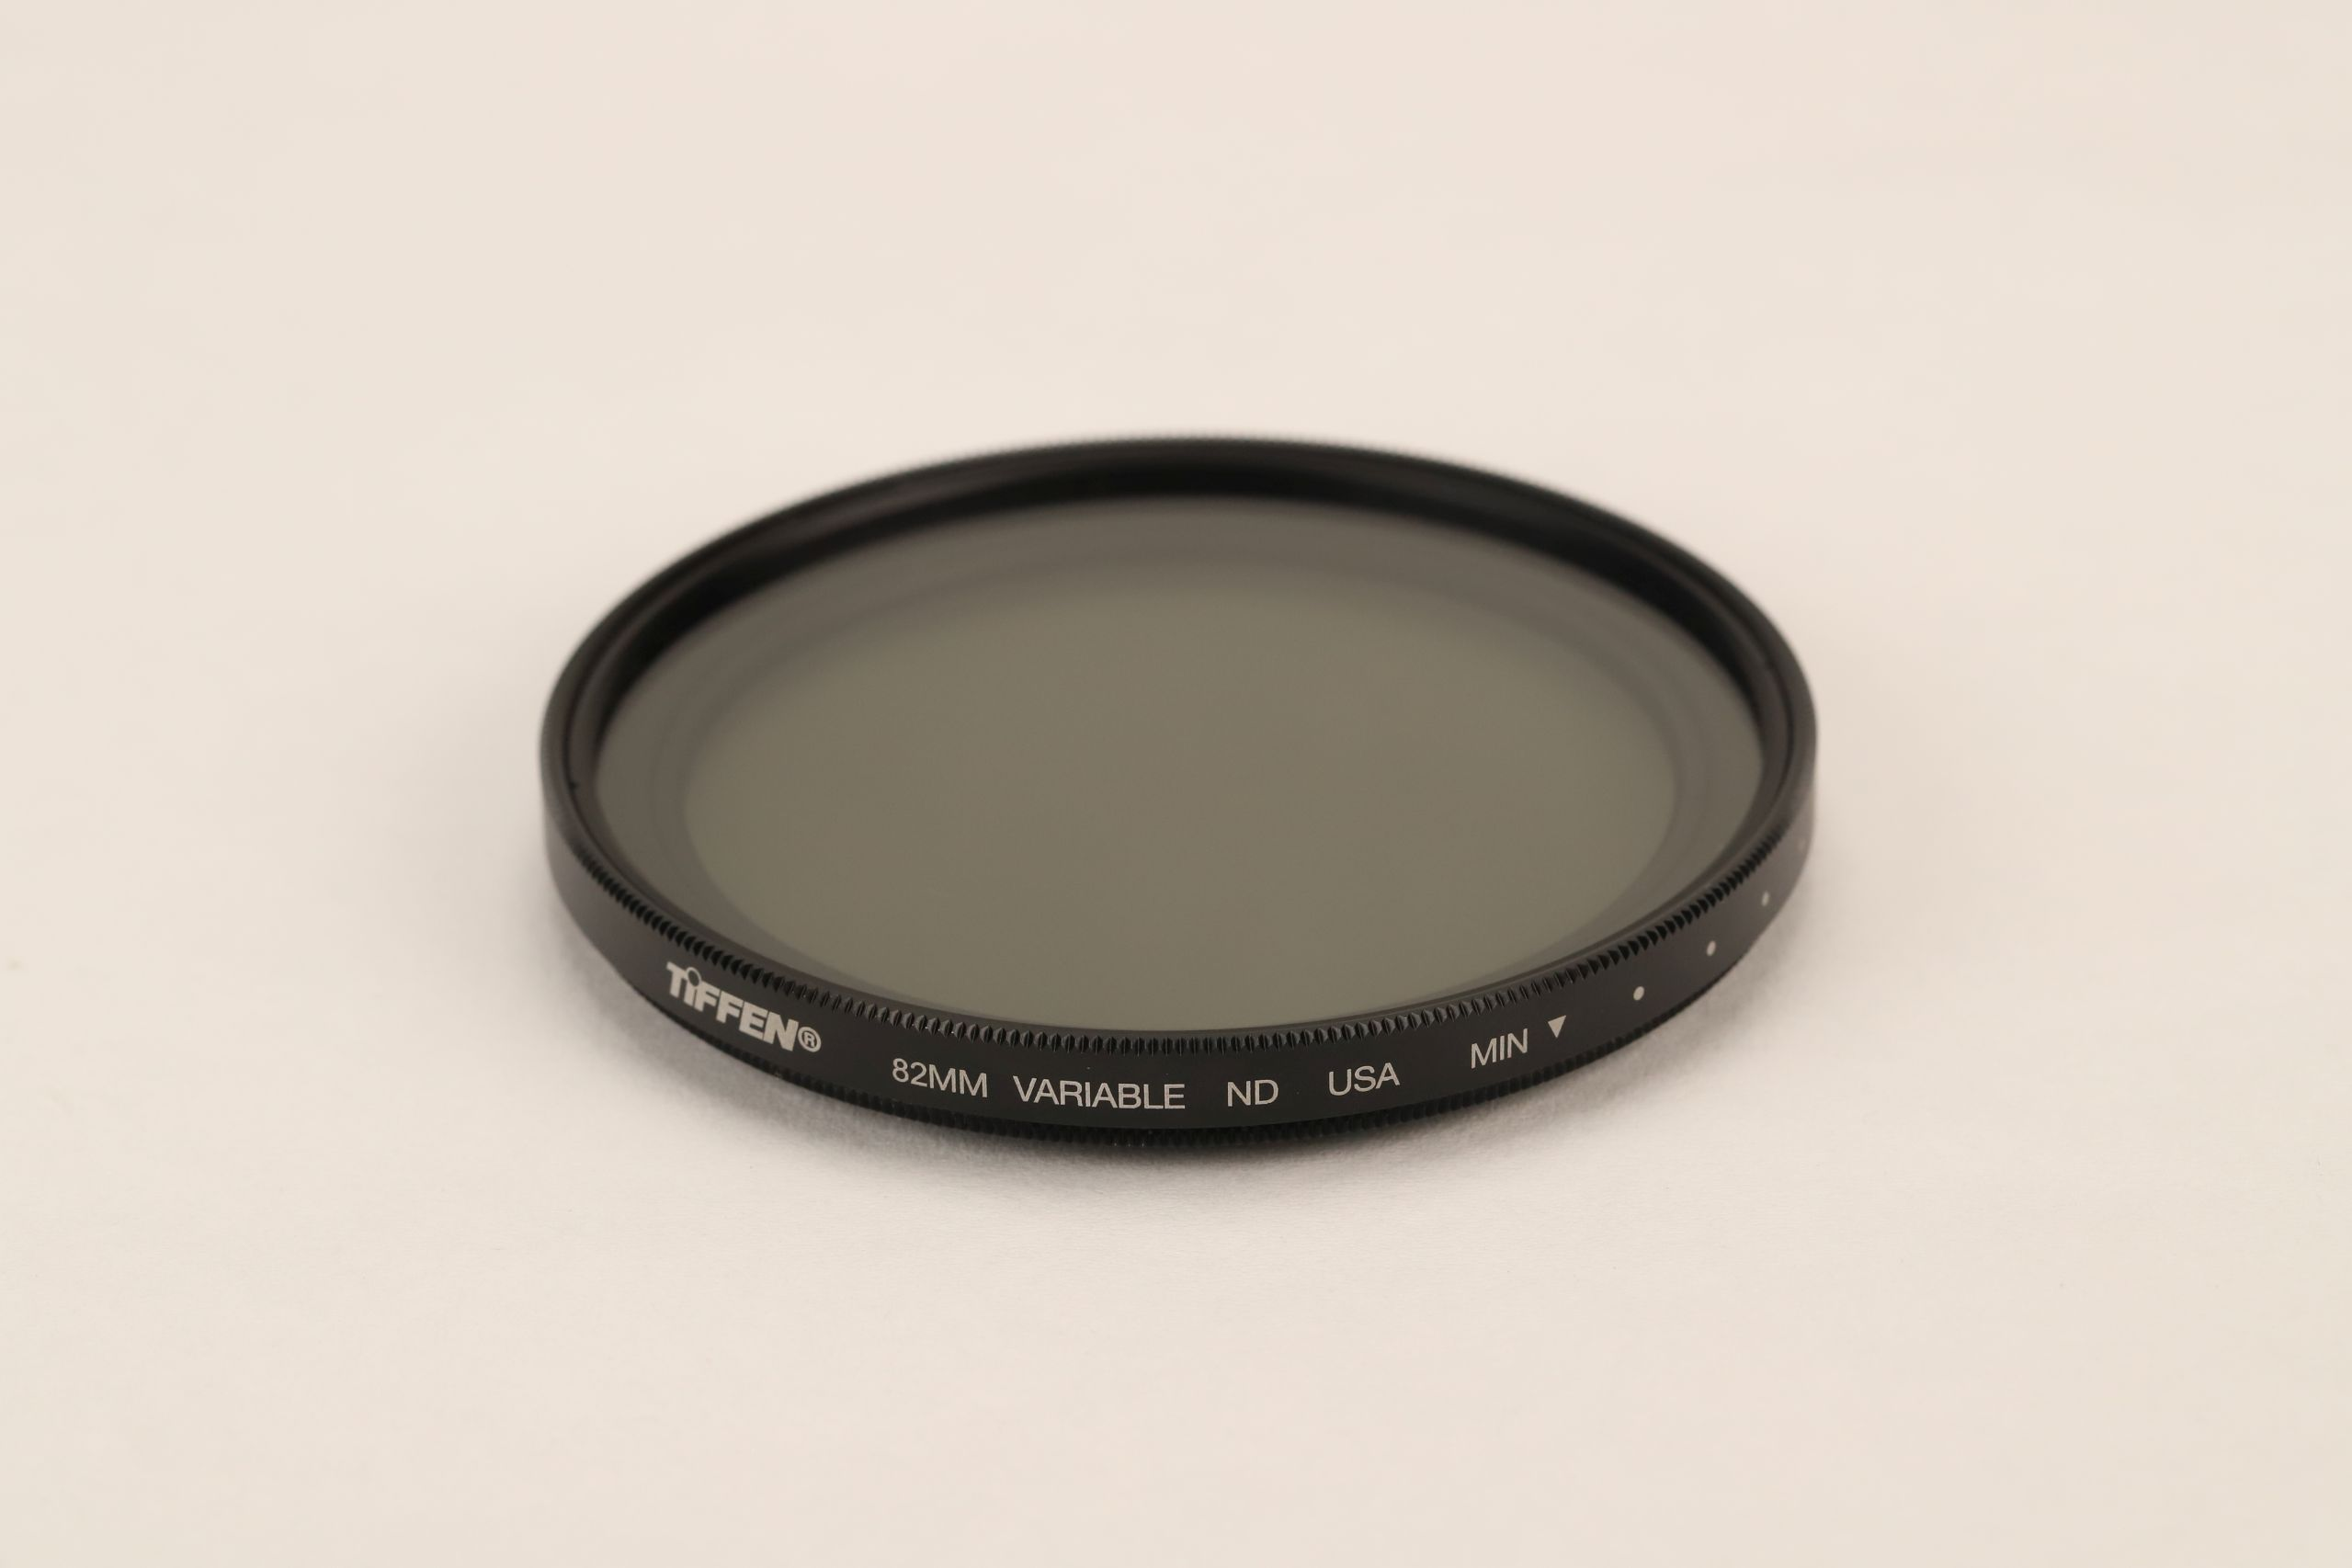 Tiffen 82mm Variable ND